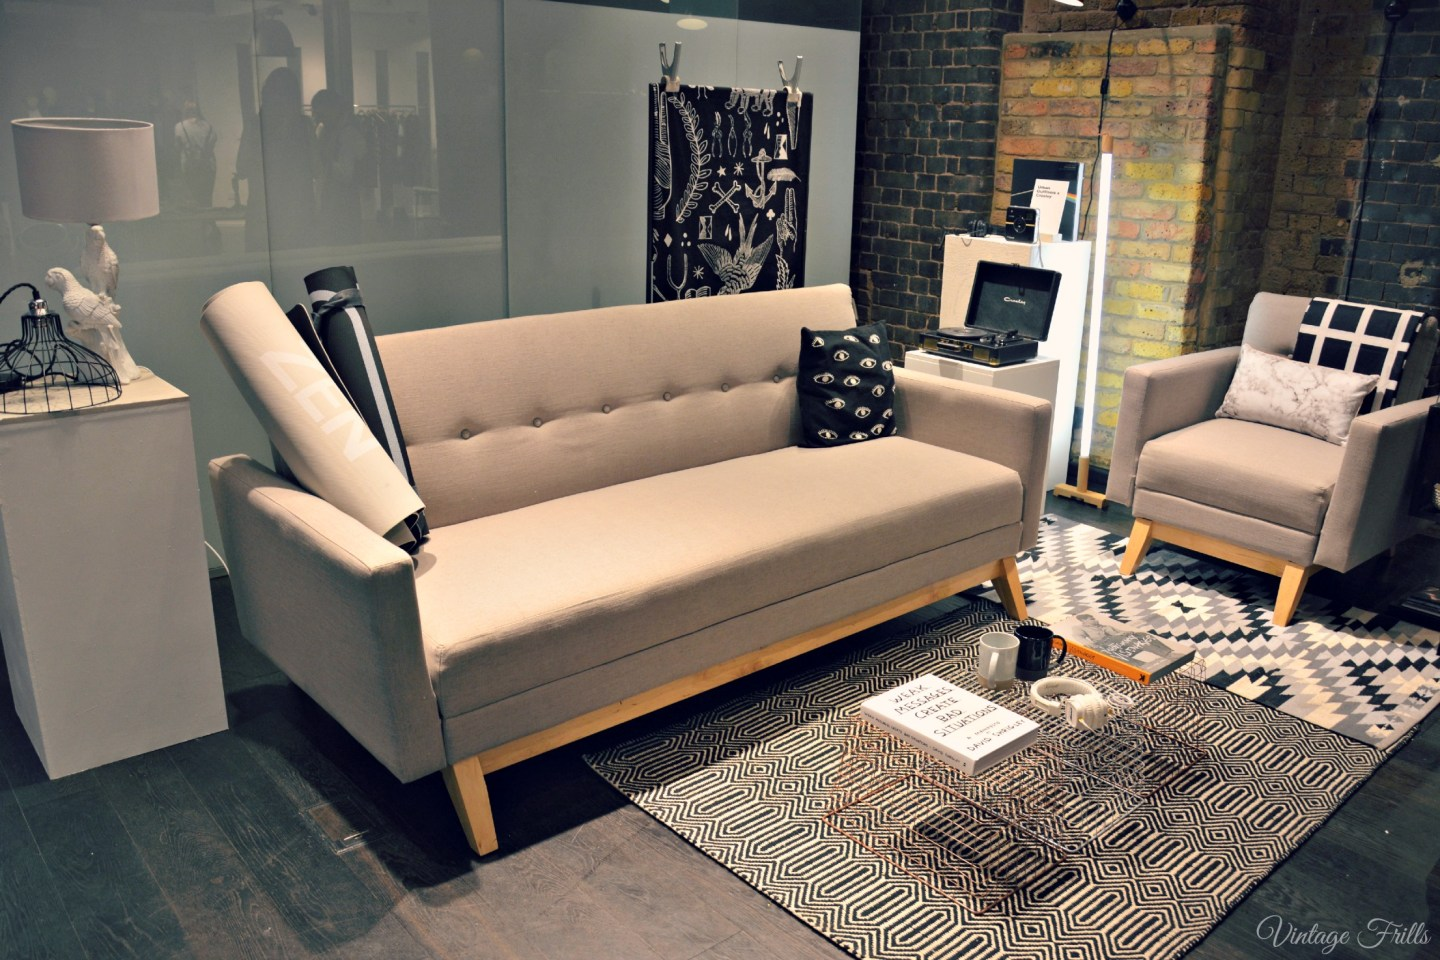 Urban Outfitters AW15 Press Day Retro Sofa Bed